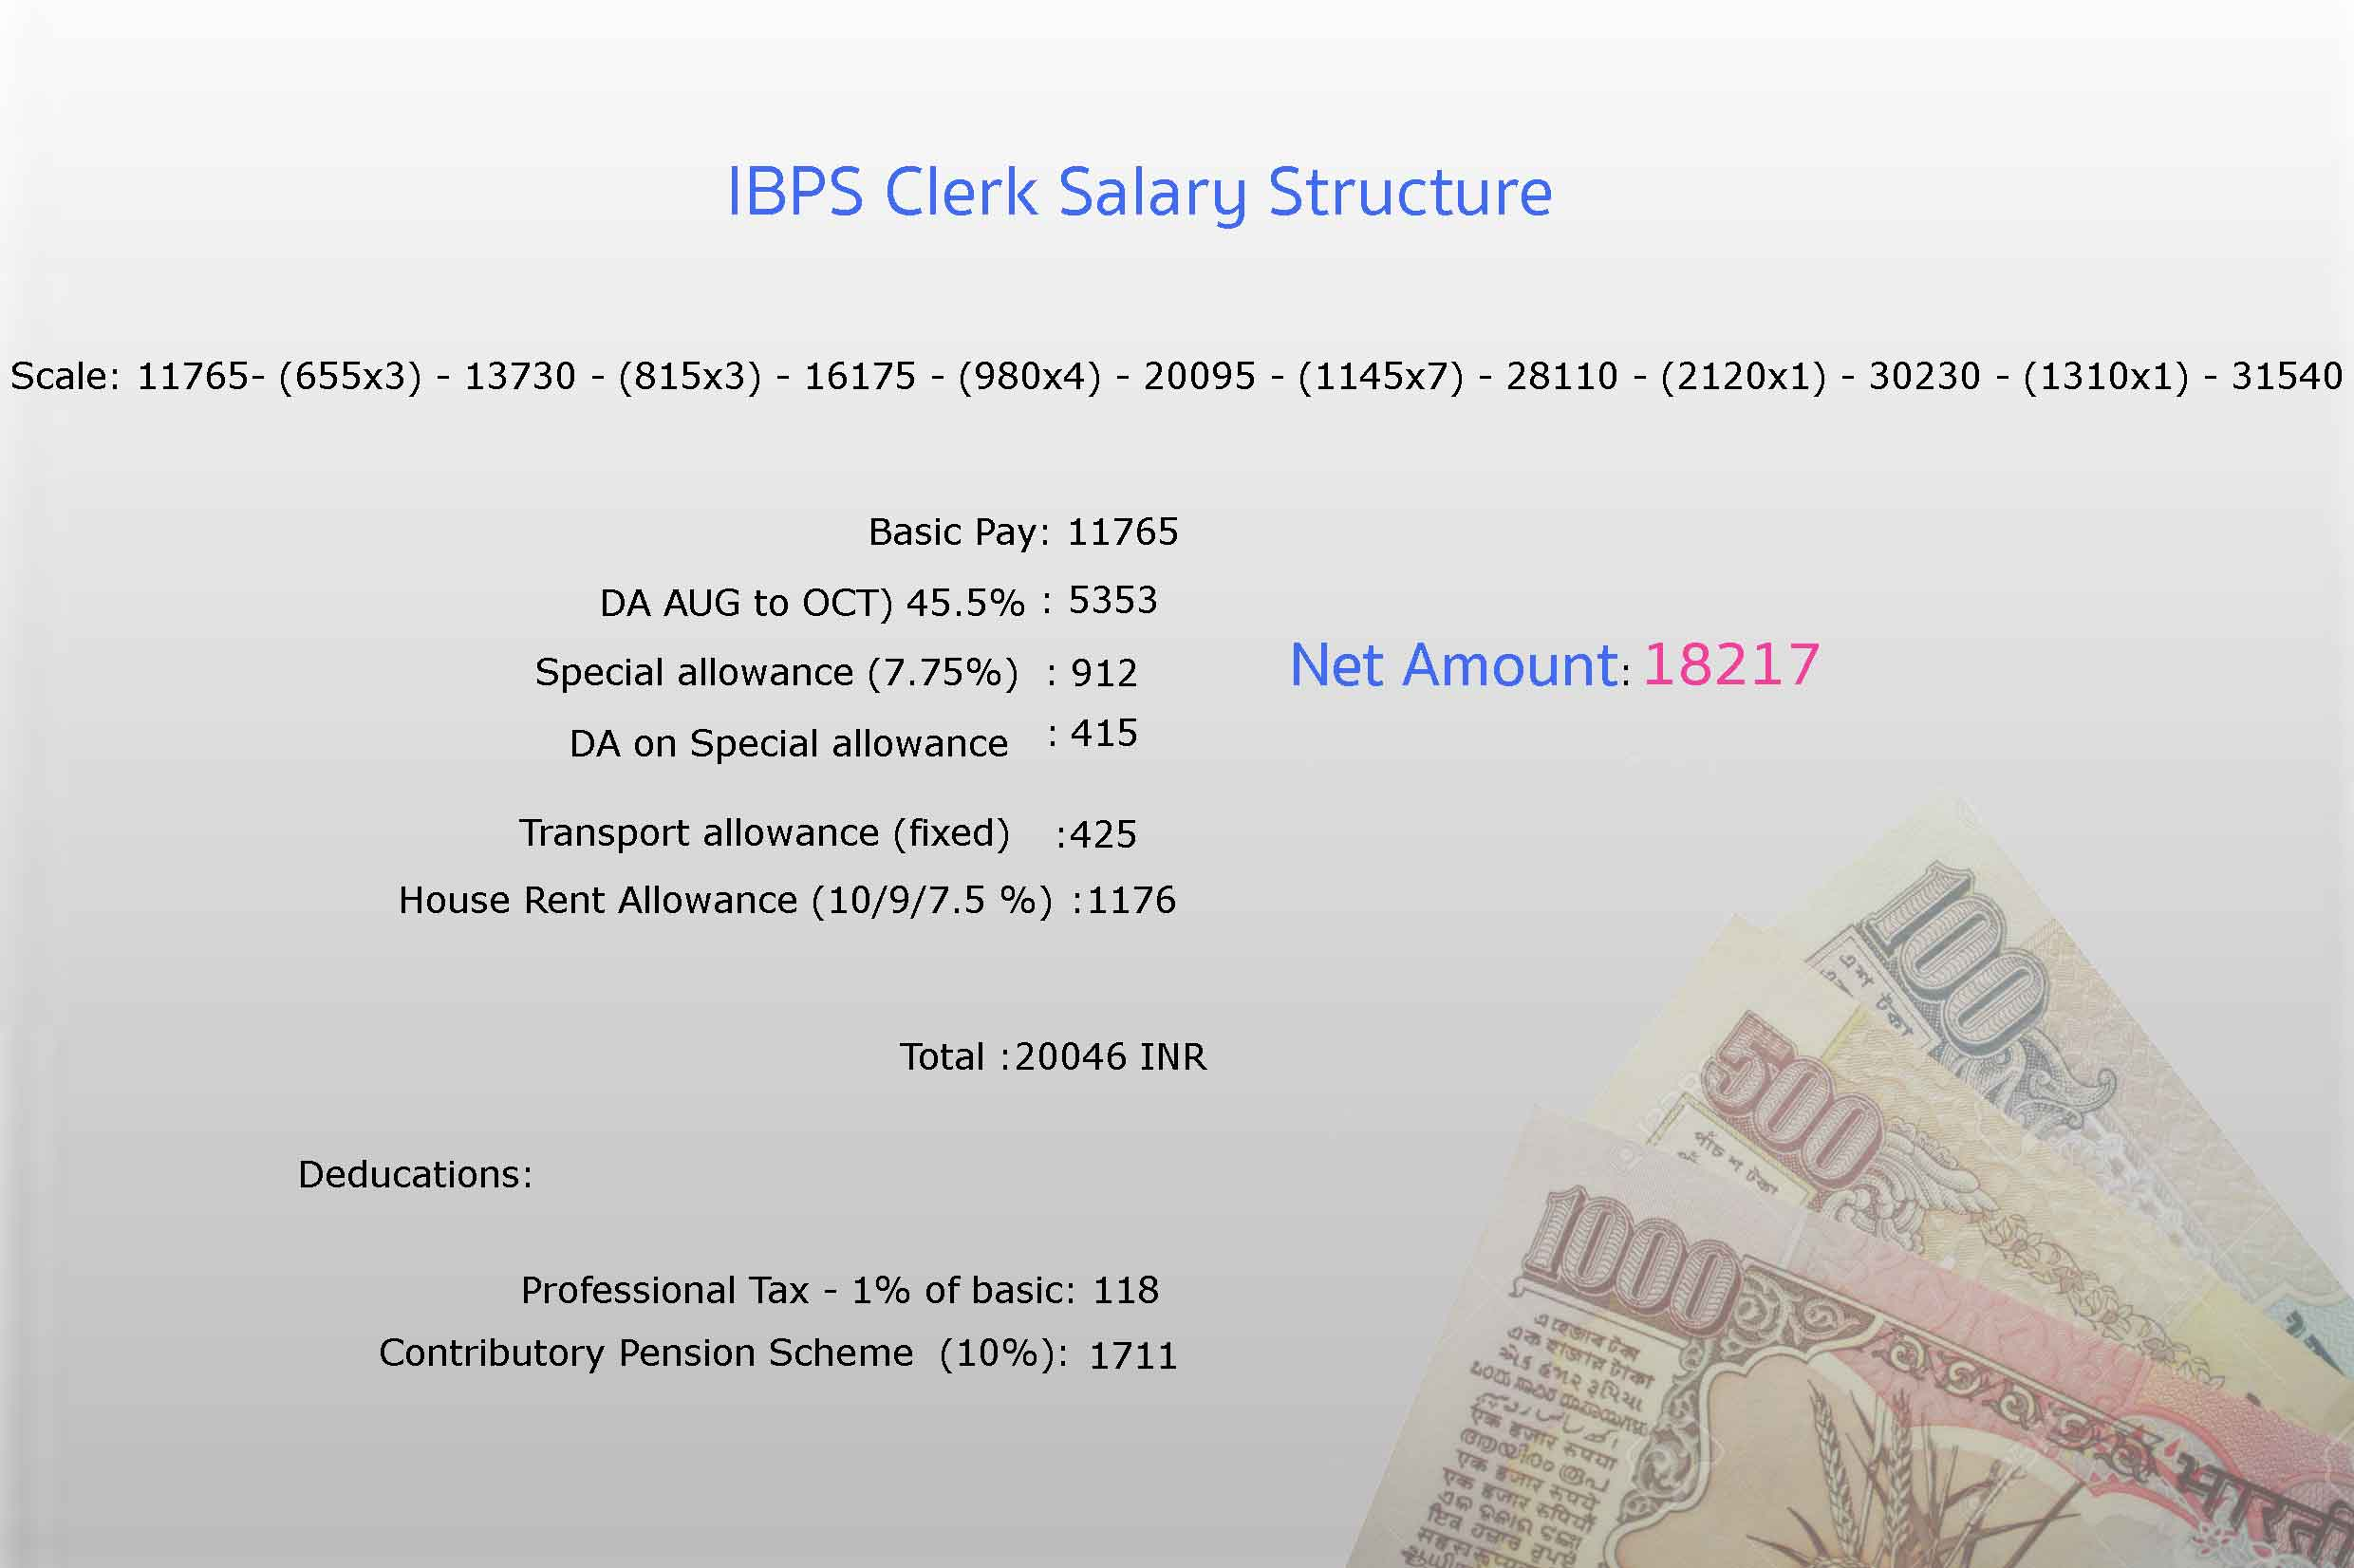 IBPS Clerk Date to Apply Online for the 2017s